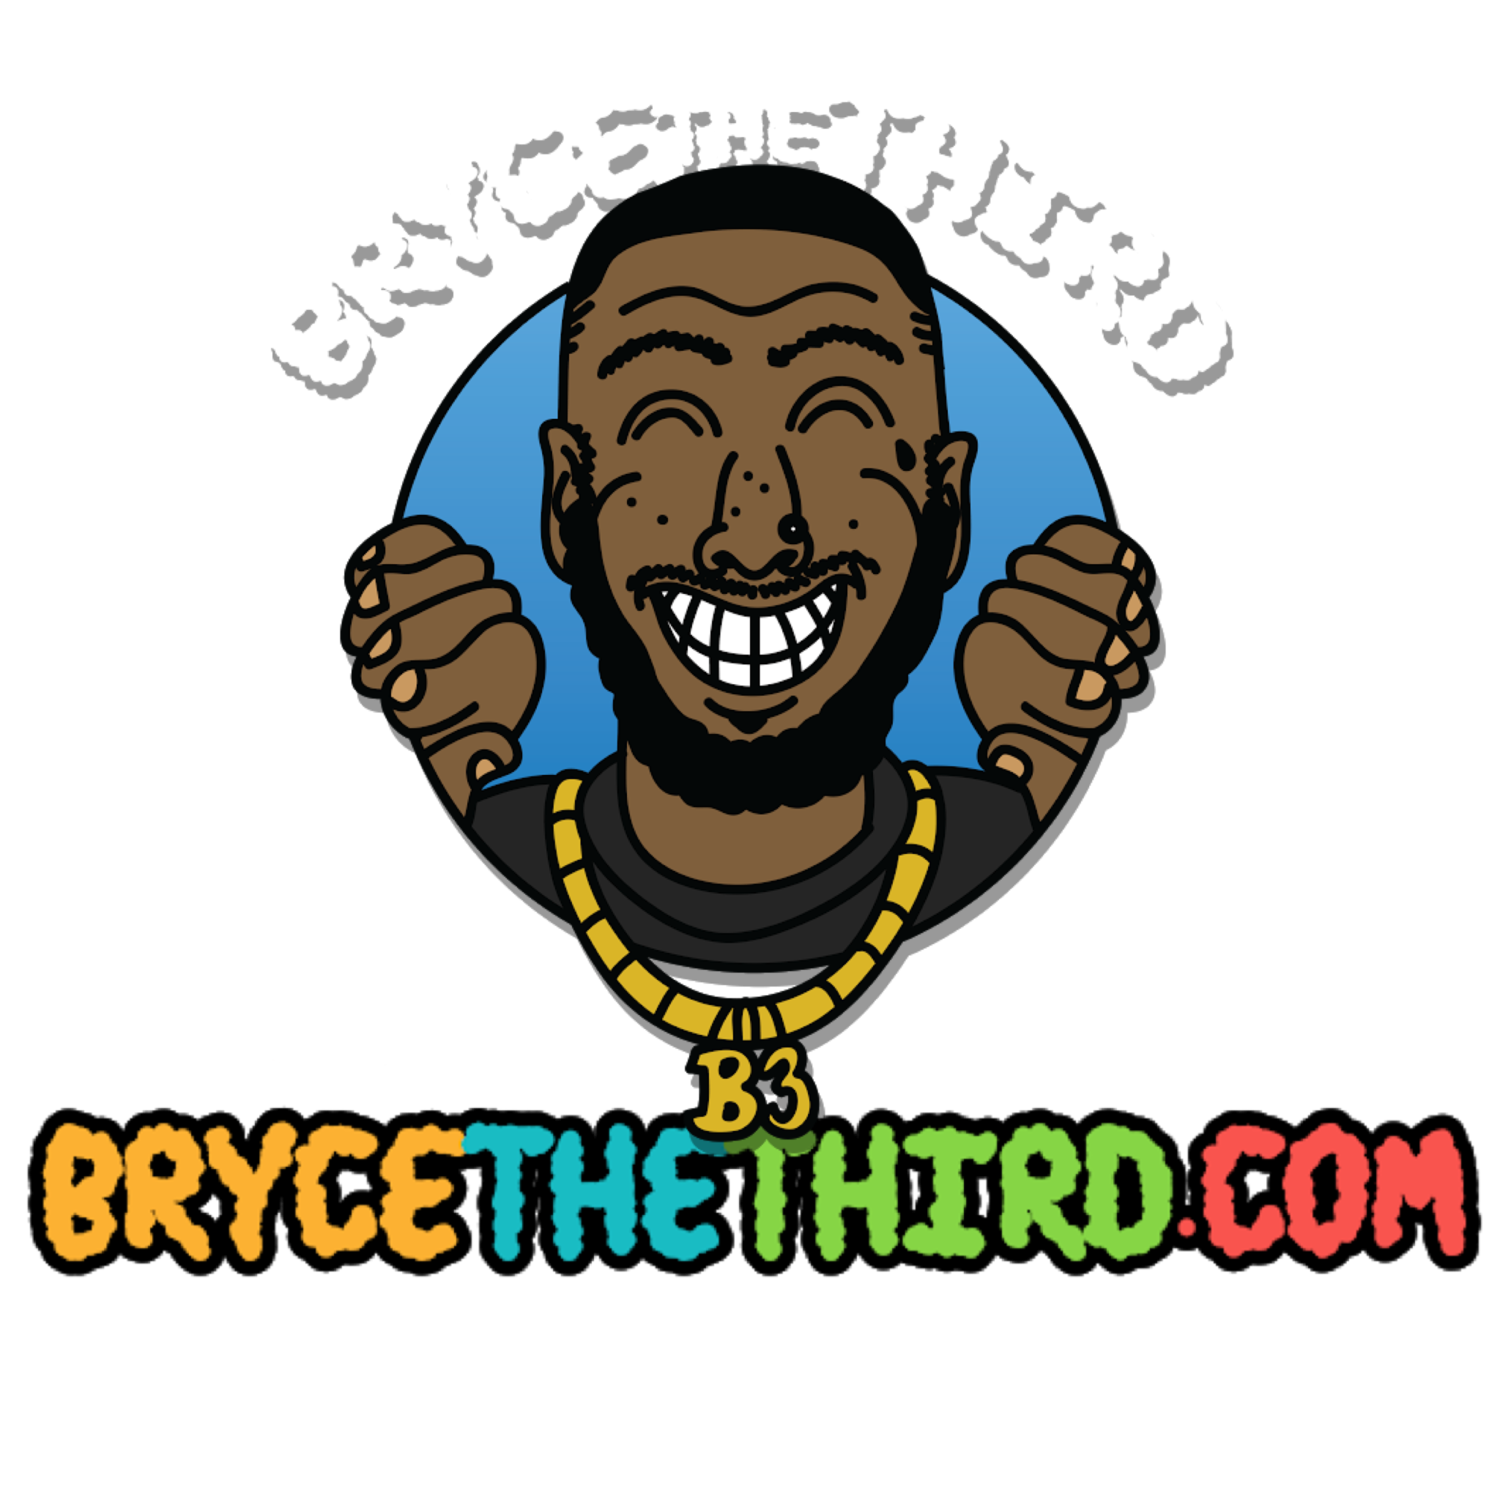 Official website of Bryce The Third